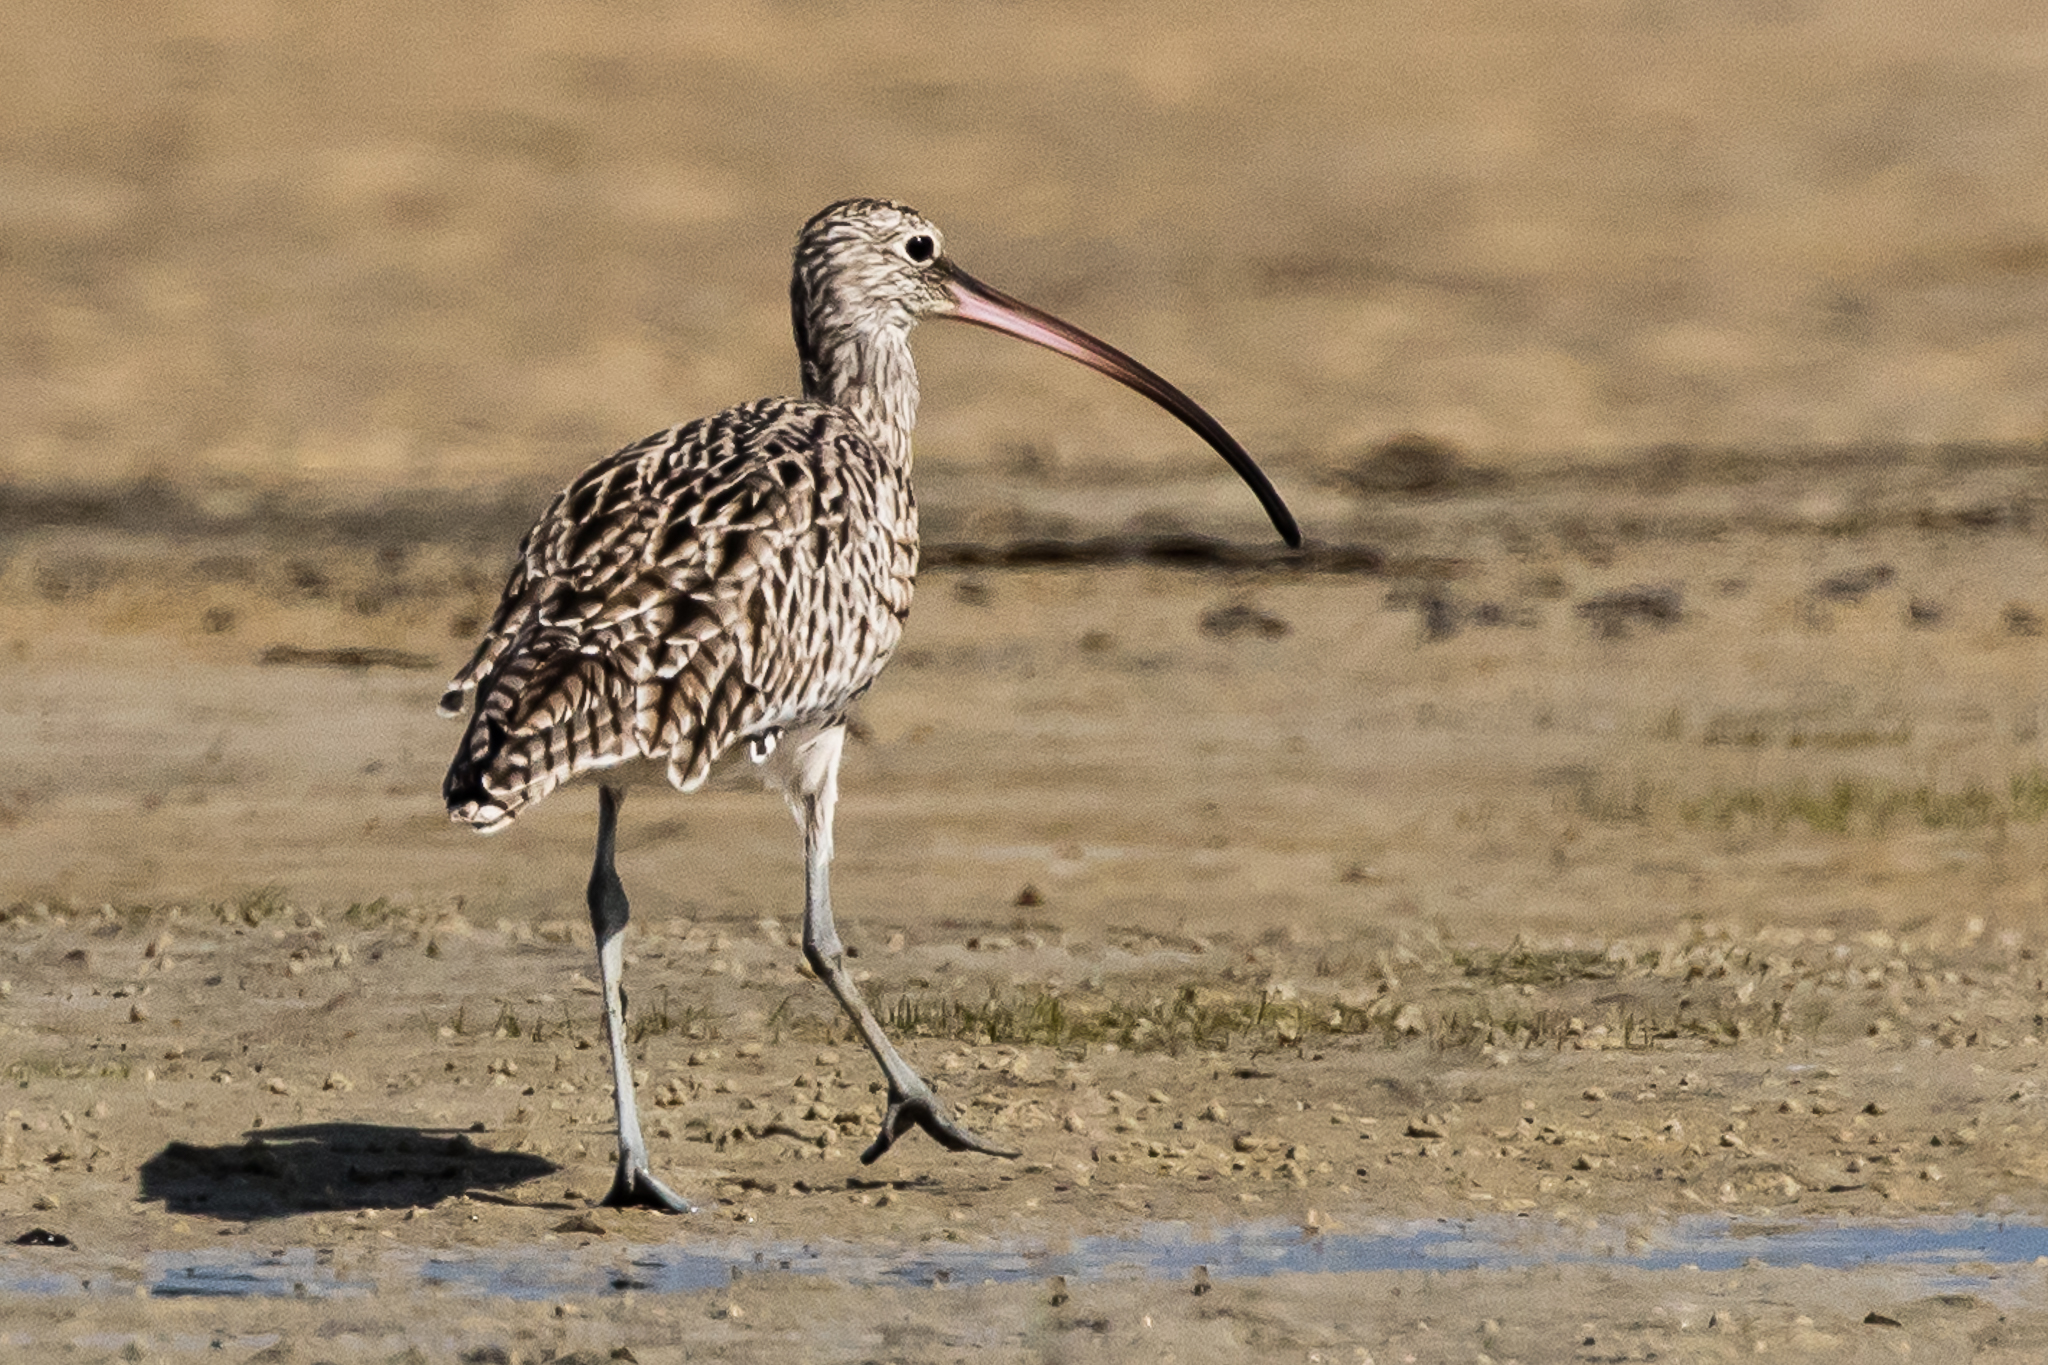 The critically endangered Eastern Curlew migrates from Russia each summer. Numbers of these birds are decreasing rapidly as Asian stop-over and refuelling mudflats are reclaimed and developed.